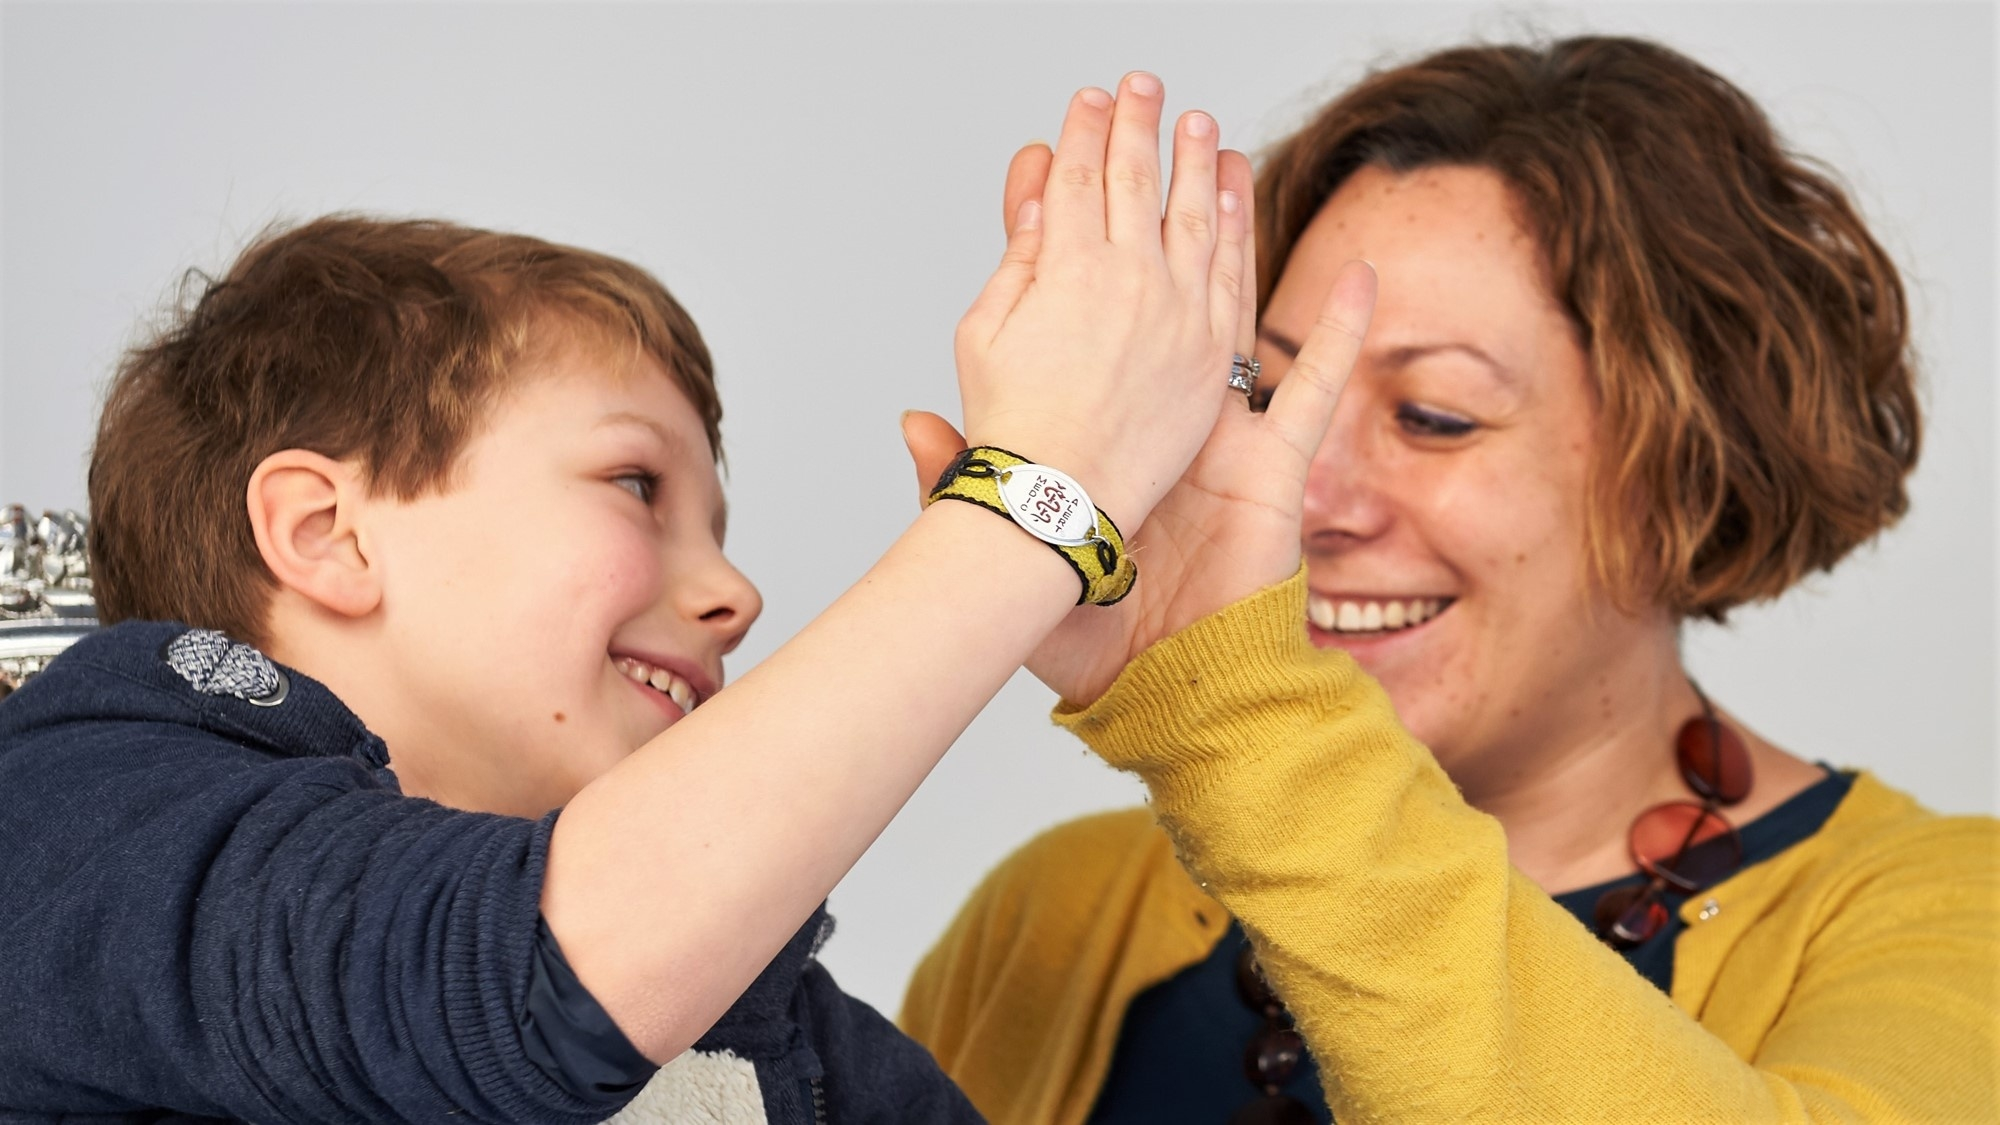 A boy wearing a MedicAlert bracelet gives a woman a high-five